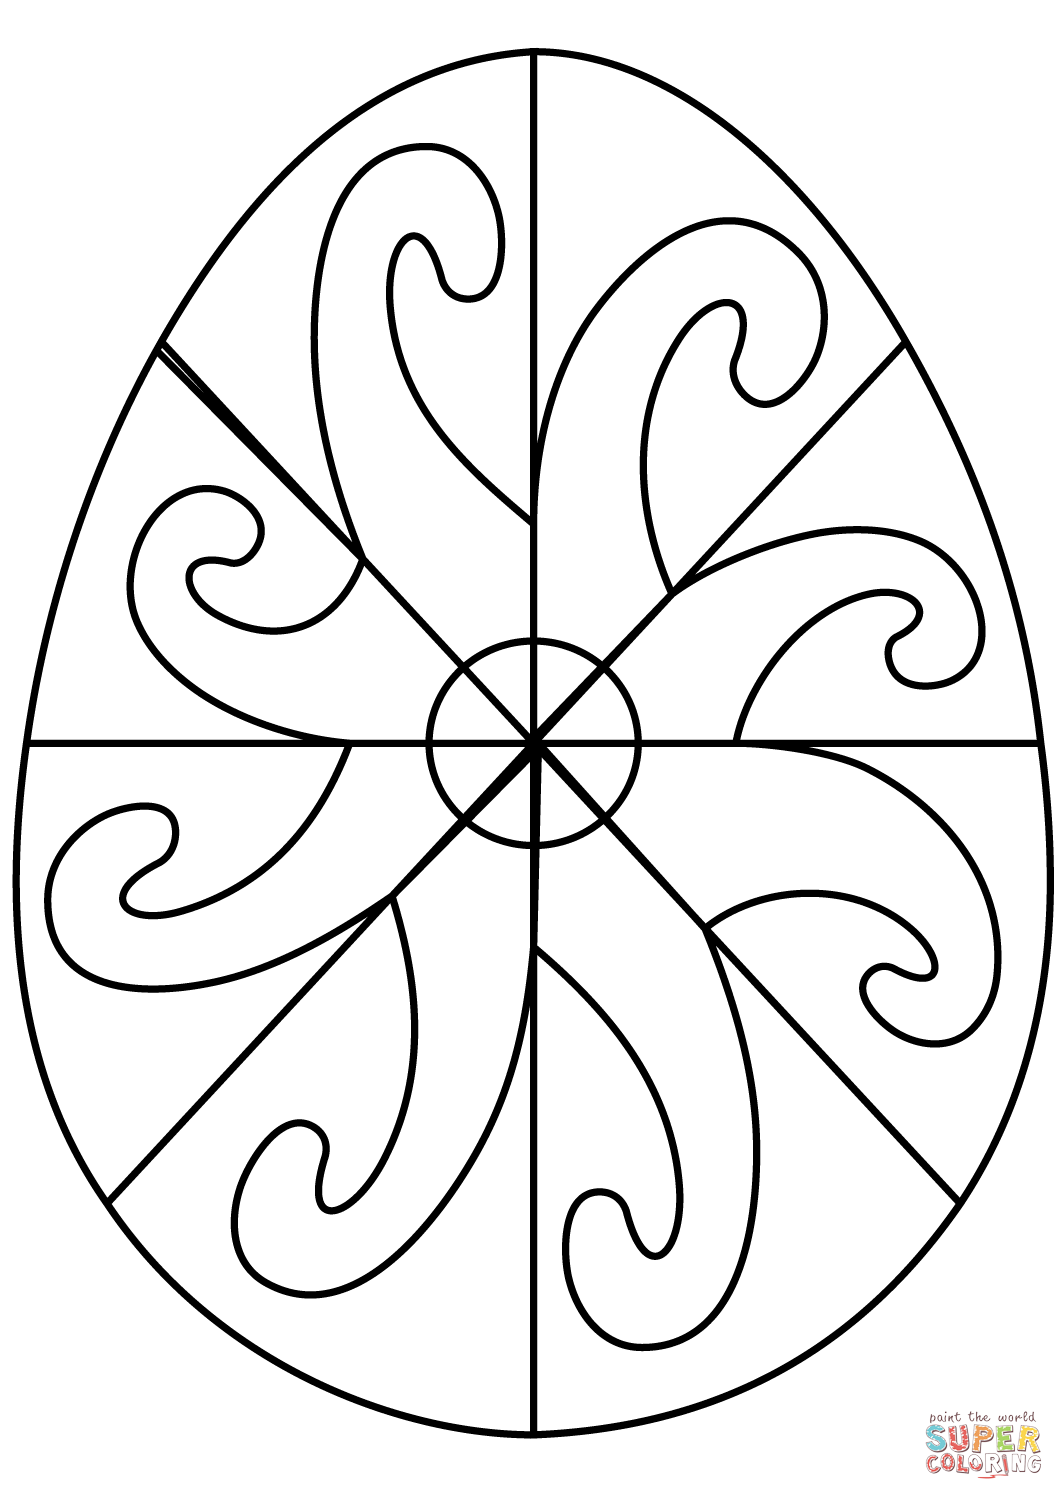 Easter Egg With Spiral Pattern Coloring Page